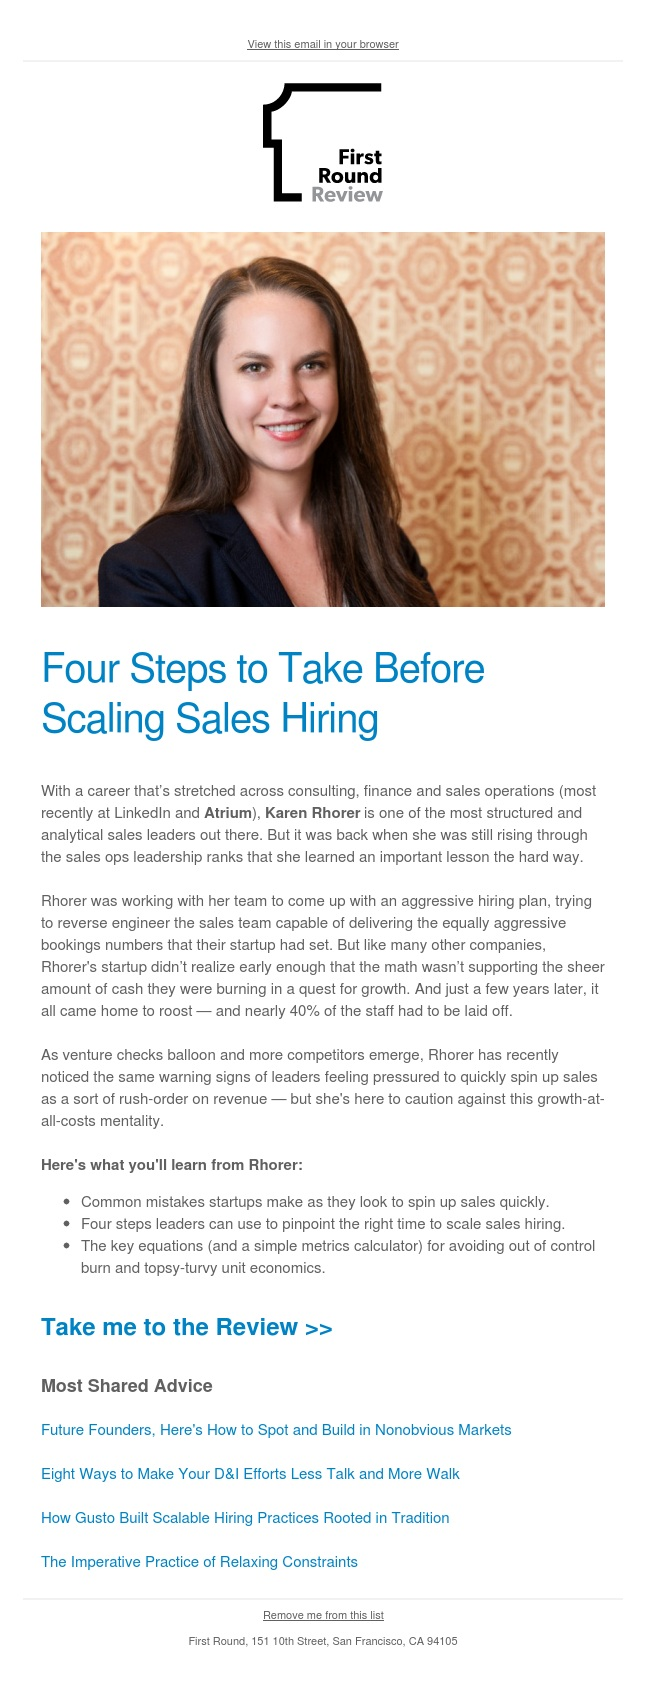 Four steps to take before scaling sales